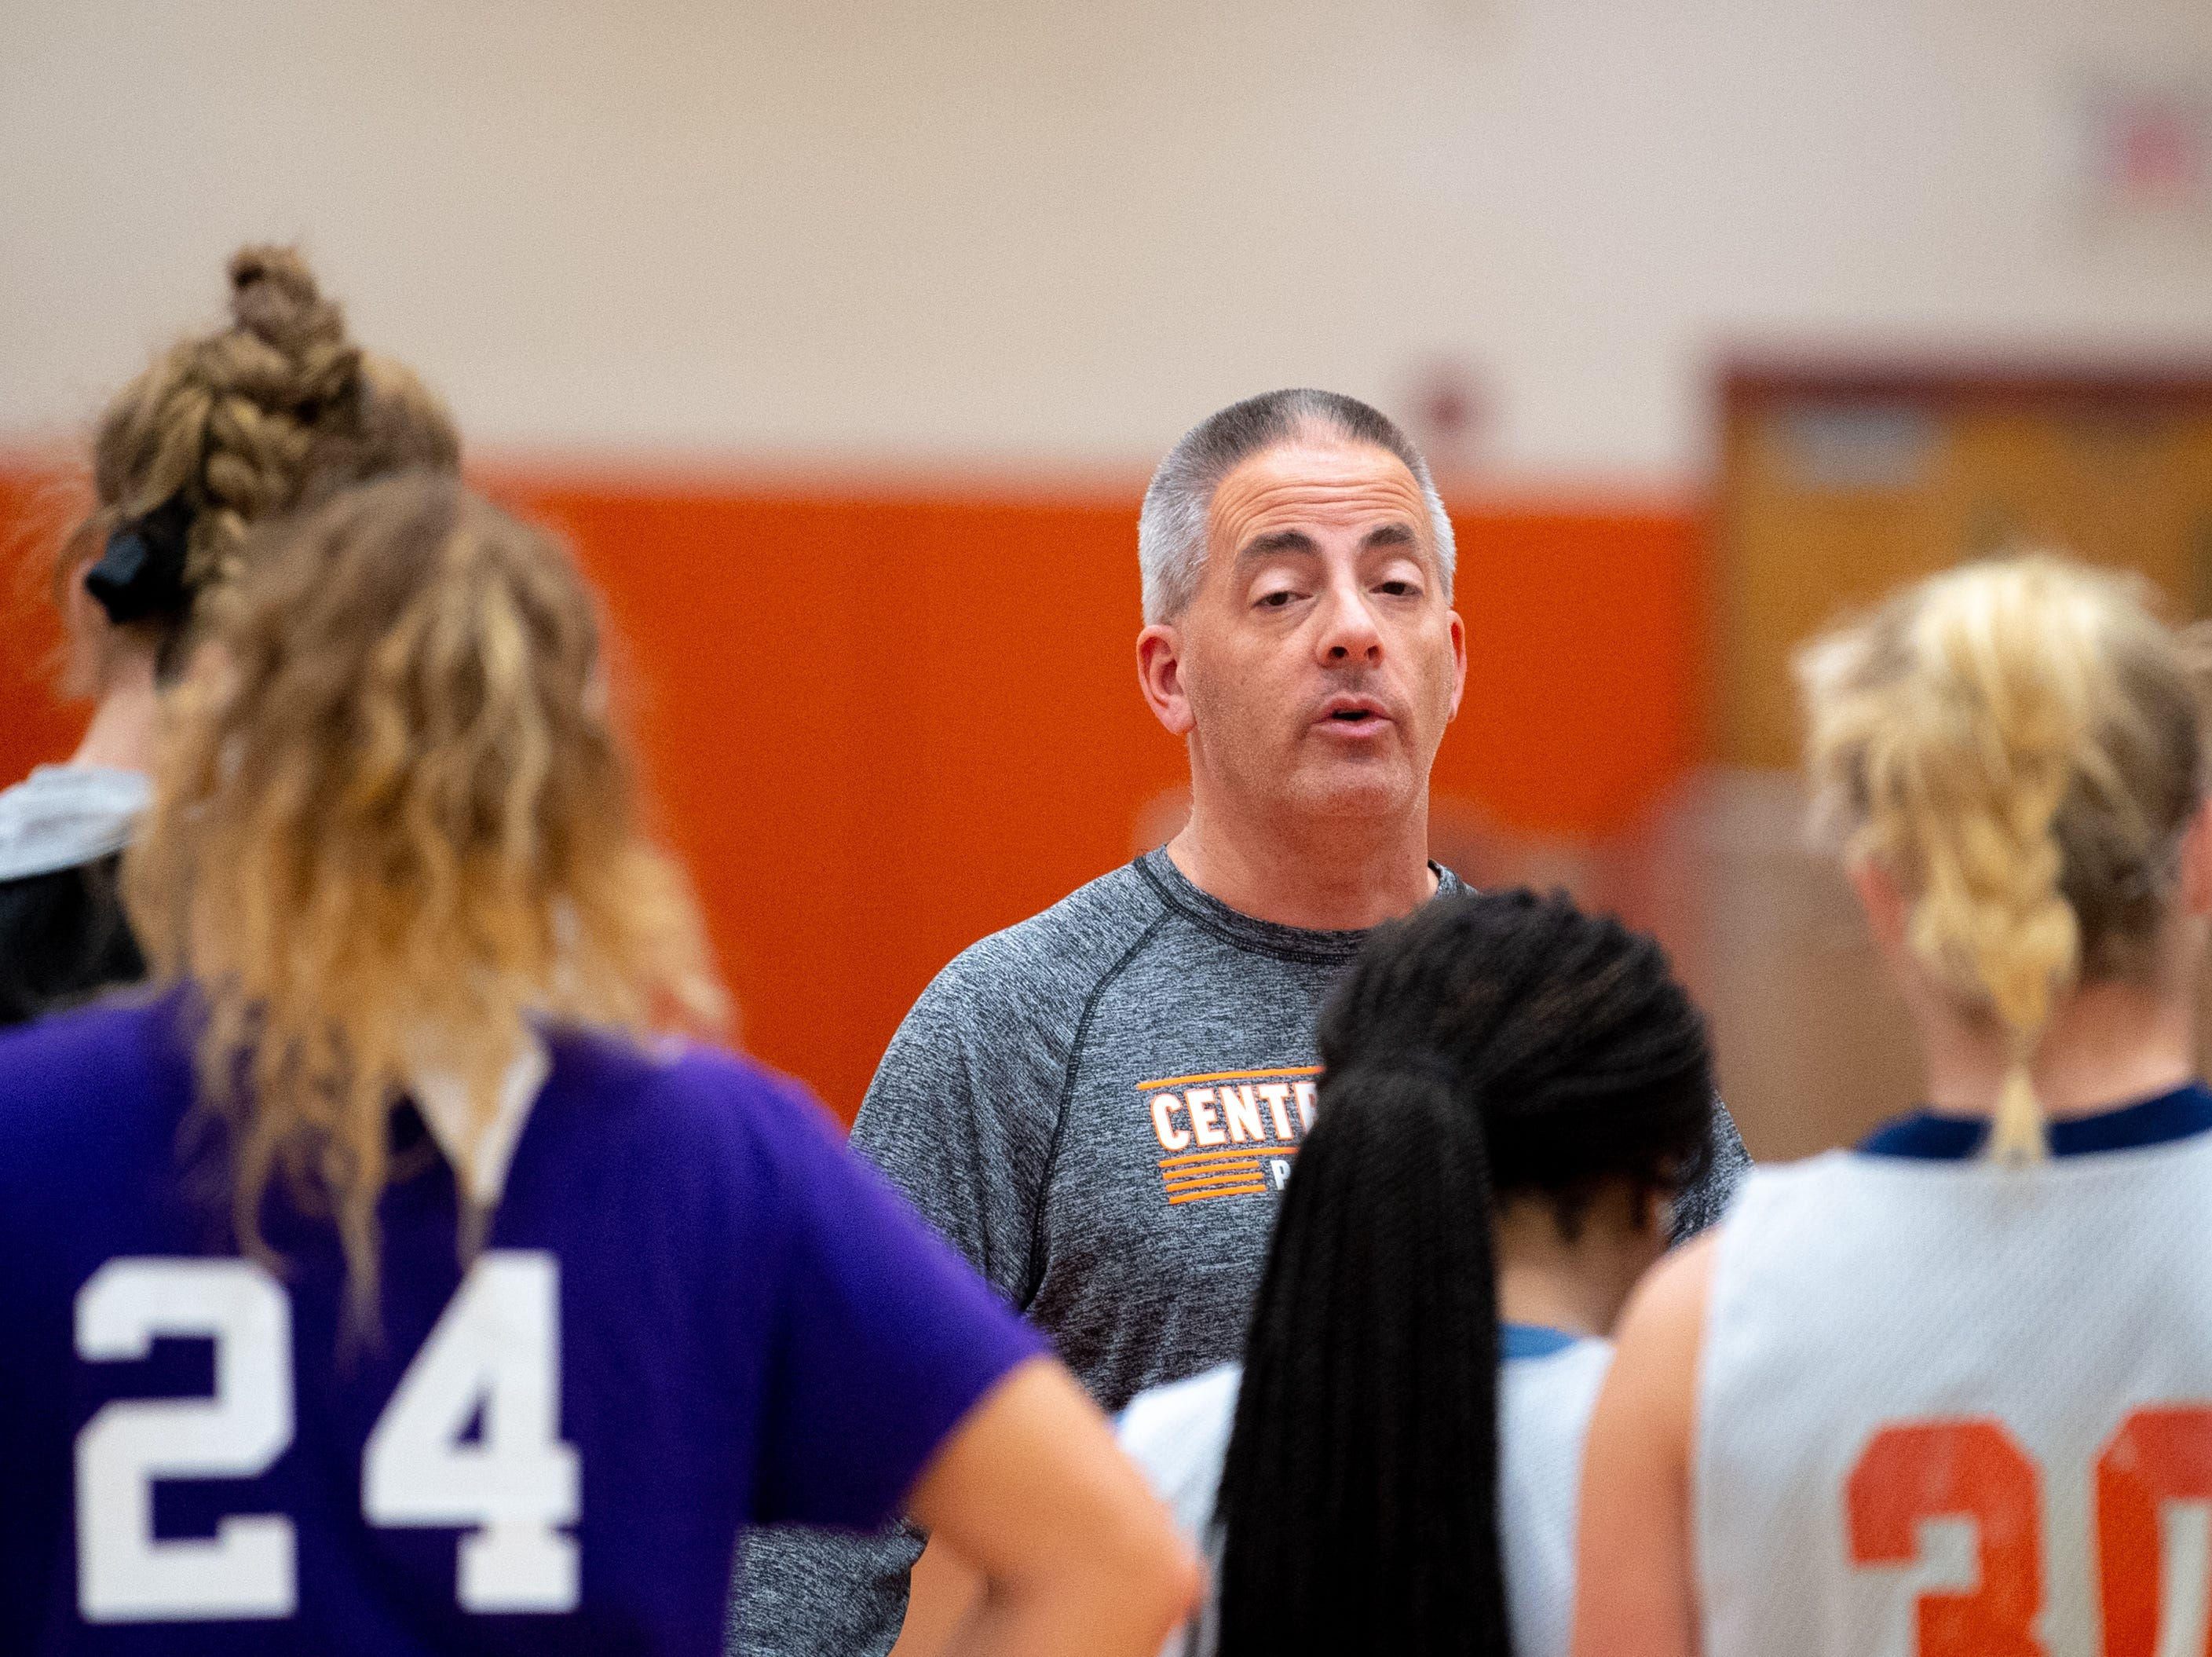 Central York girls' basketball head coach Scott Wisner addresses his players after practice, Wednesday, November 21, 2018.